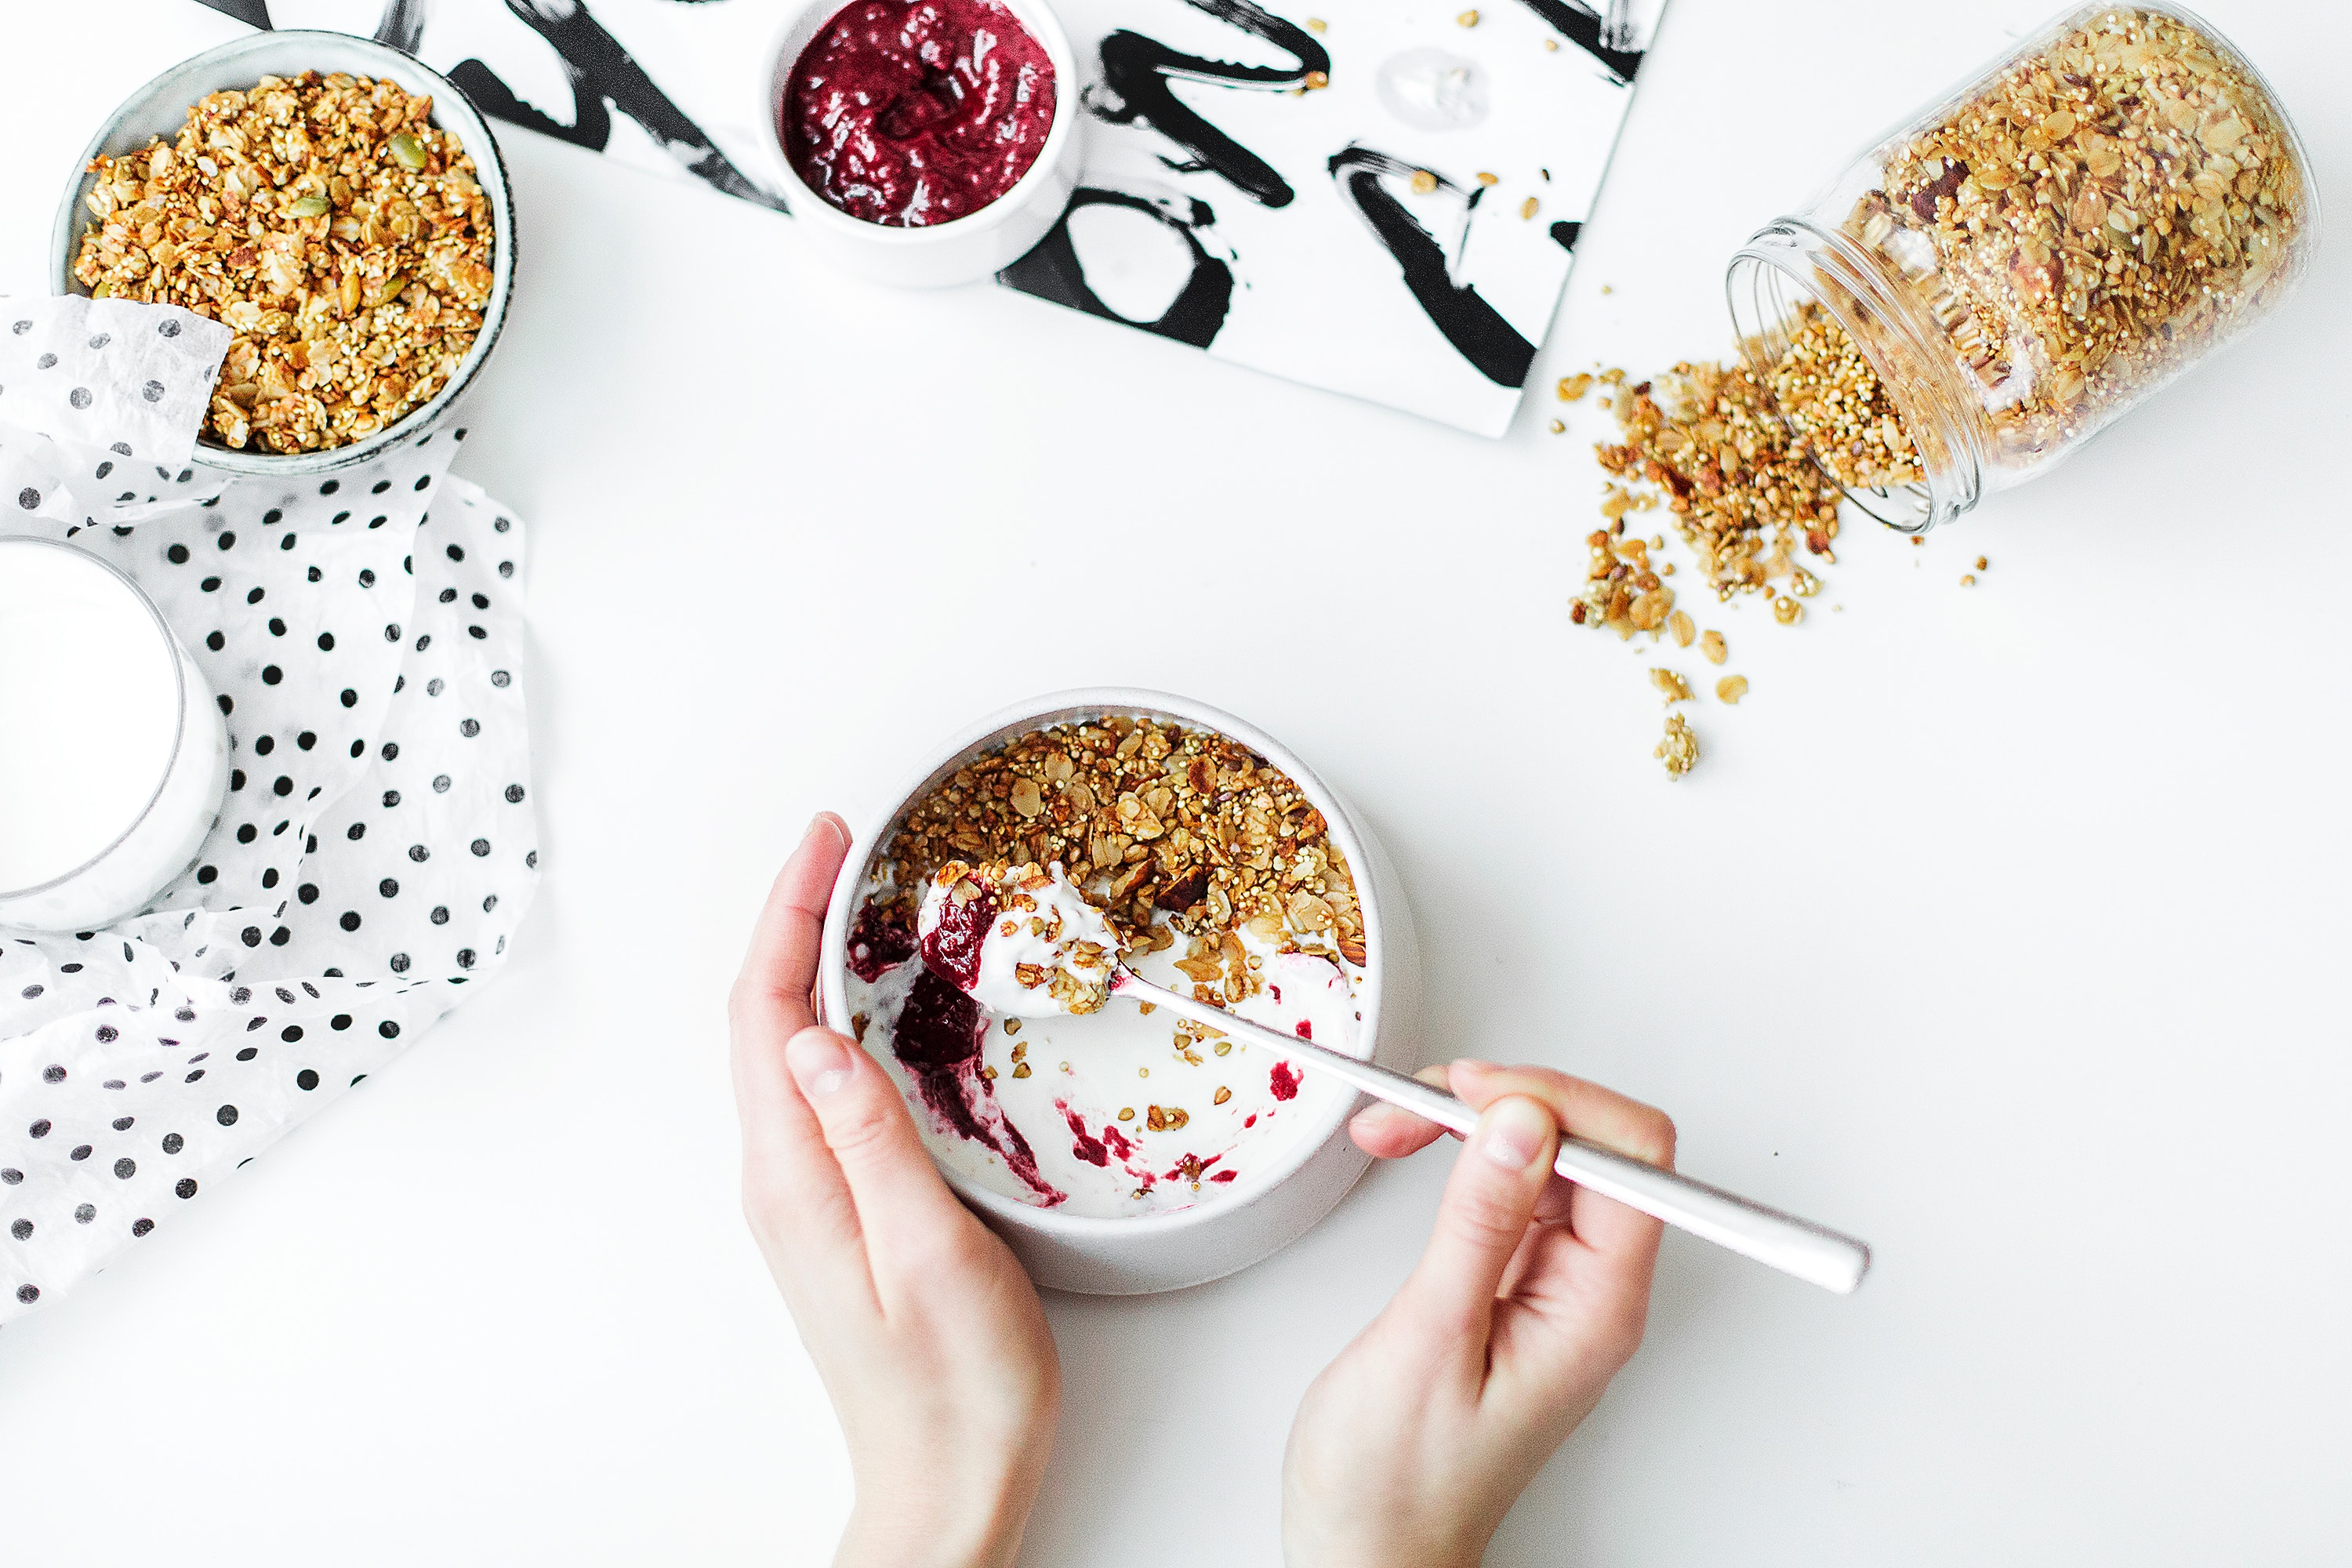 5 Nutritionist-Approved Breakfasts Proven To Help Kick Start Your Day